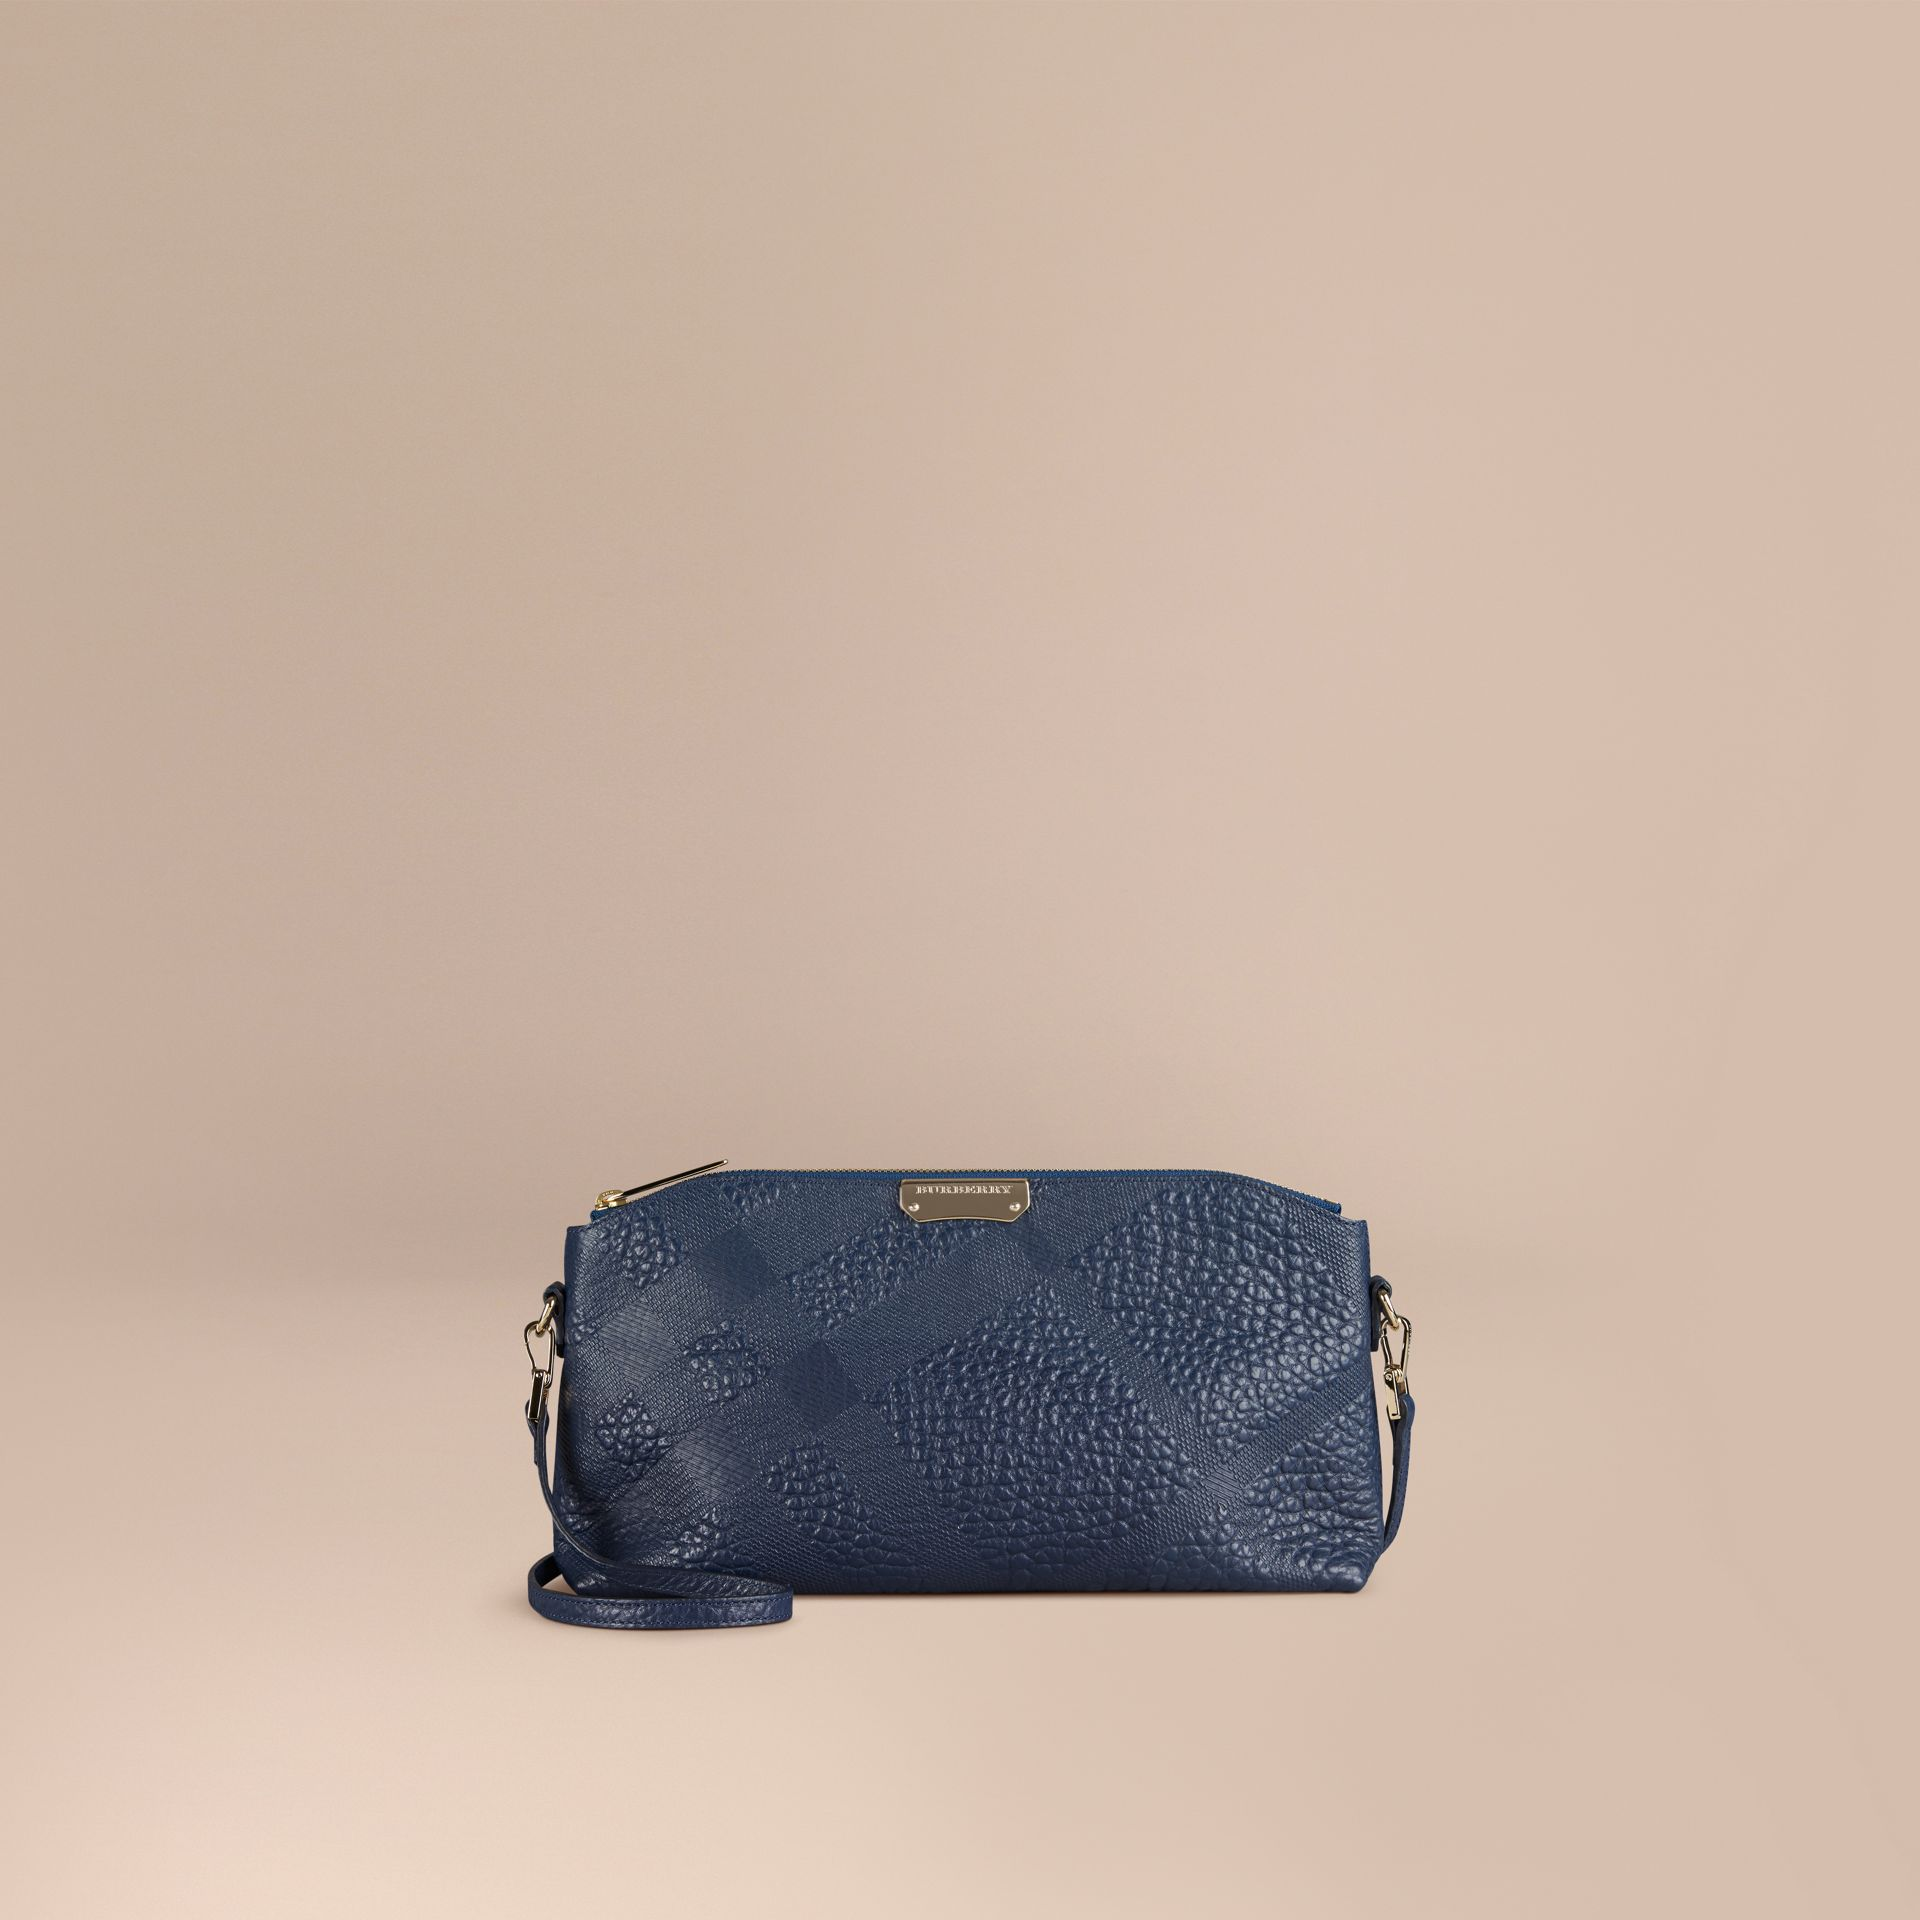 Small Embossed Check Leather Clutch Bag Blue Carbon - gallery image 1